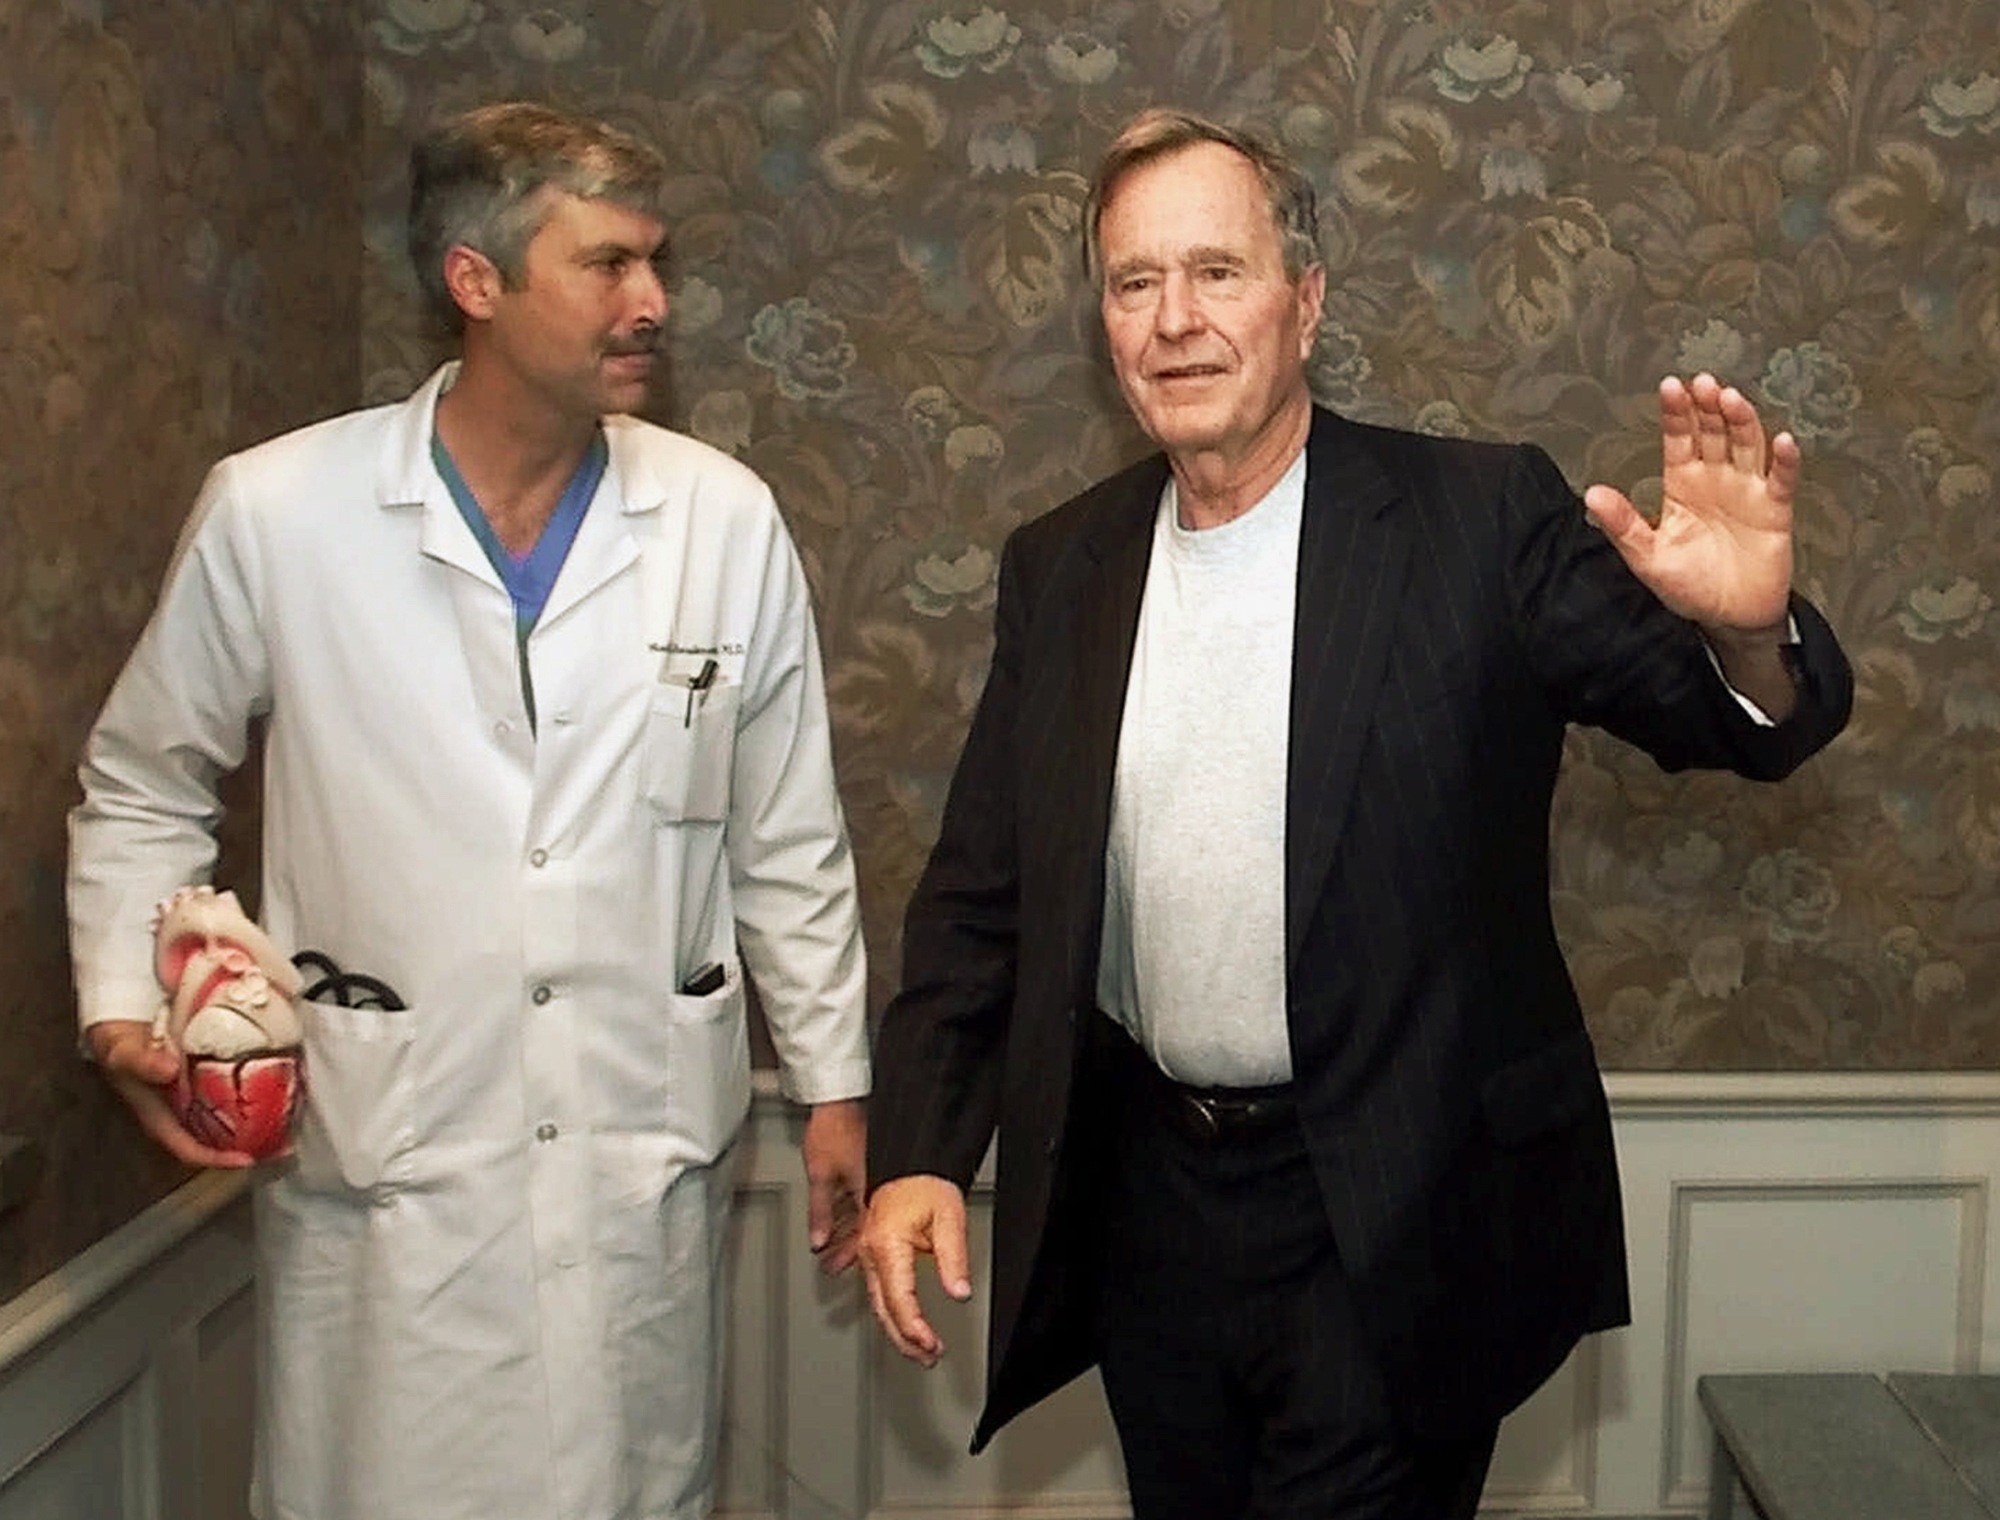 FILE - In this Feb. 25, 2000, file photo, former President George H.W. Bush waves as he leaves Methodist Hospital with his cardiologist, Mark Hausknecht, after a news conference in Houston. Hausknecht, who once treated former President George H.W. Bush, was fatally shot by a fellow bicyclist Friday, July 20, 2018, while riding through a Houston medical complex, and police were trying to determine if the shooting was random or a targeted act.